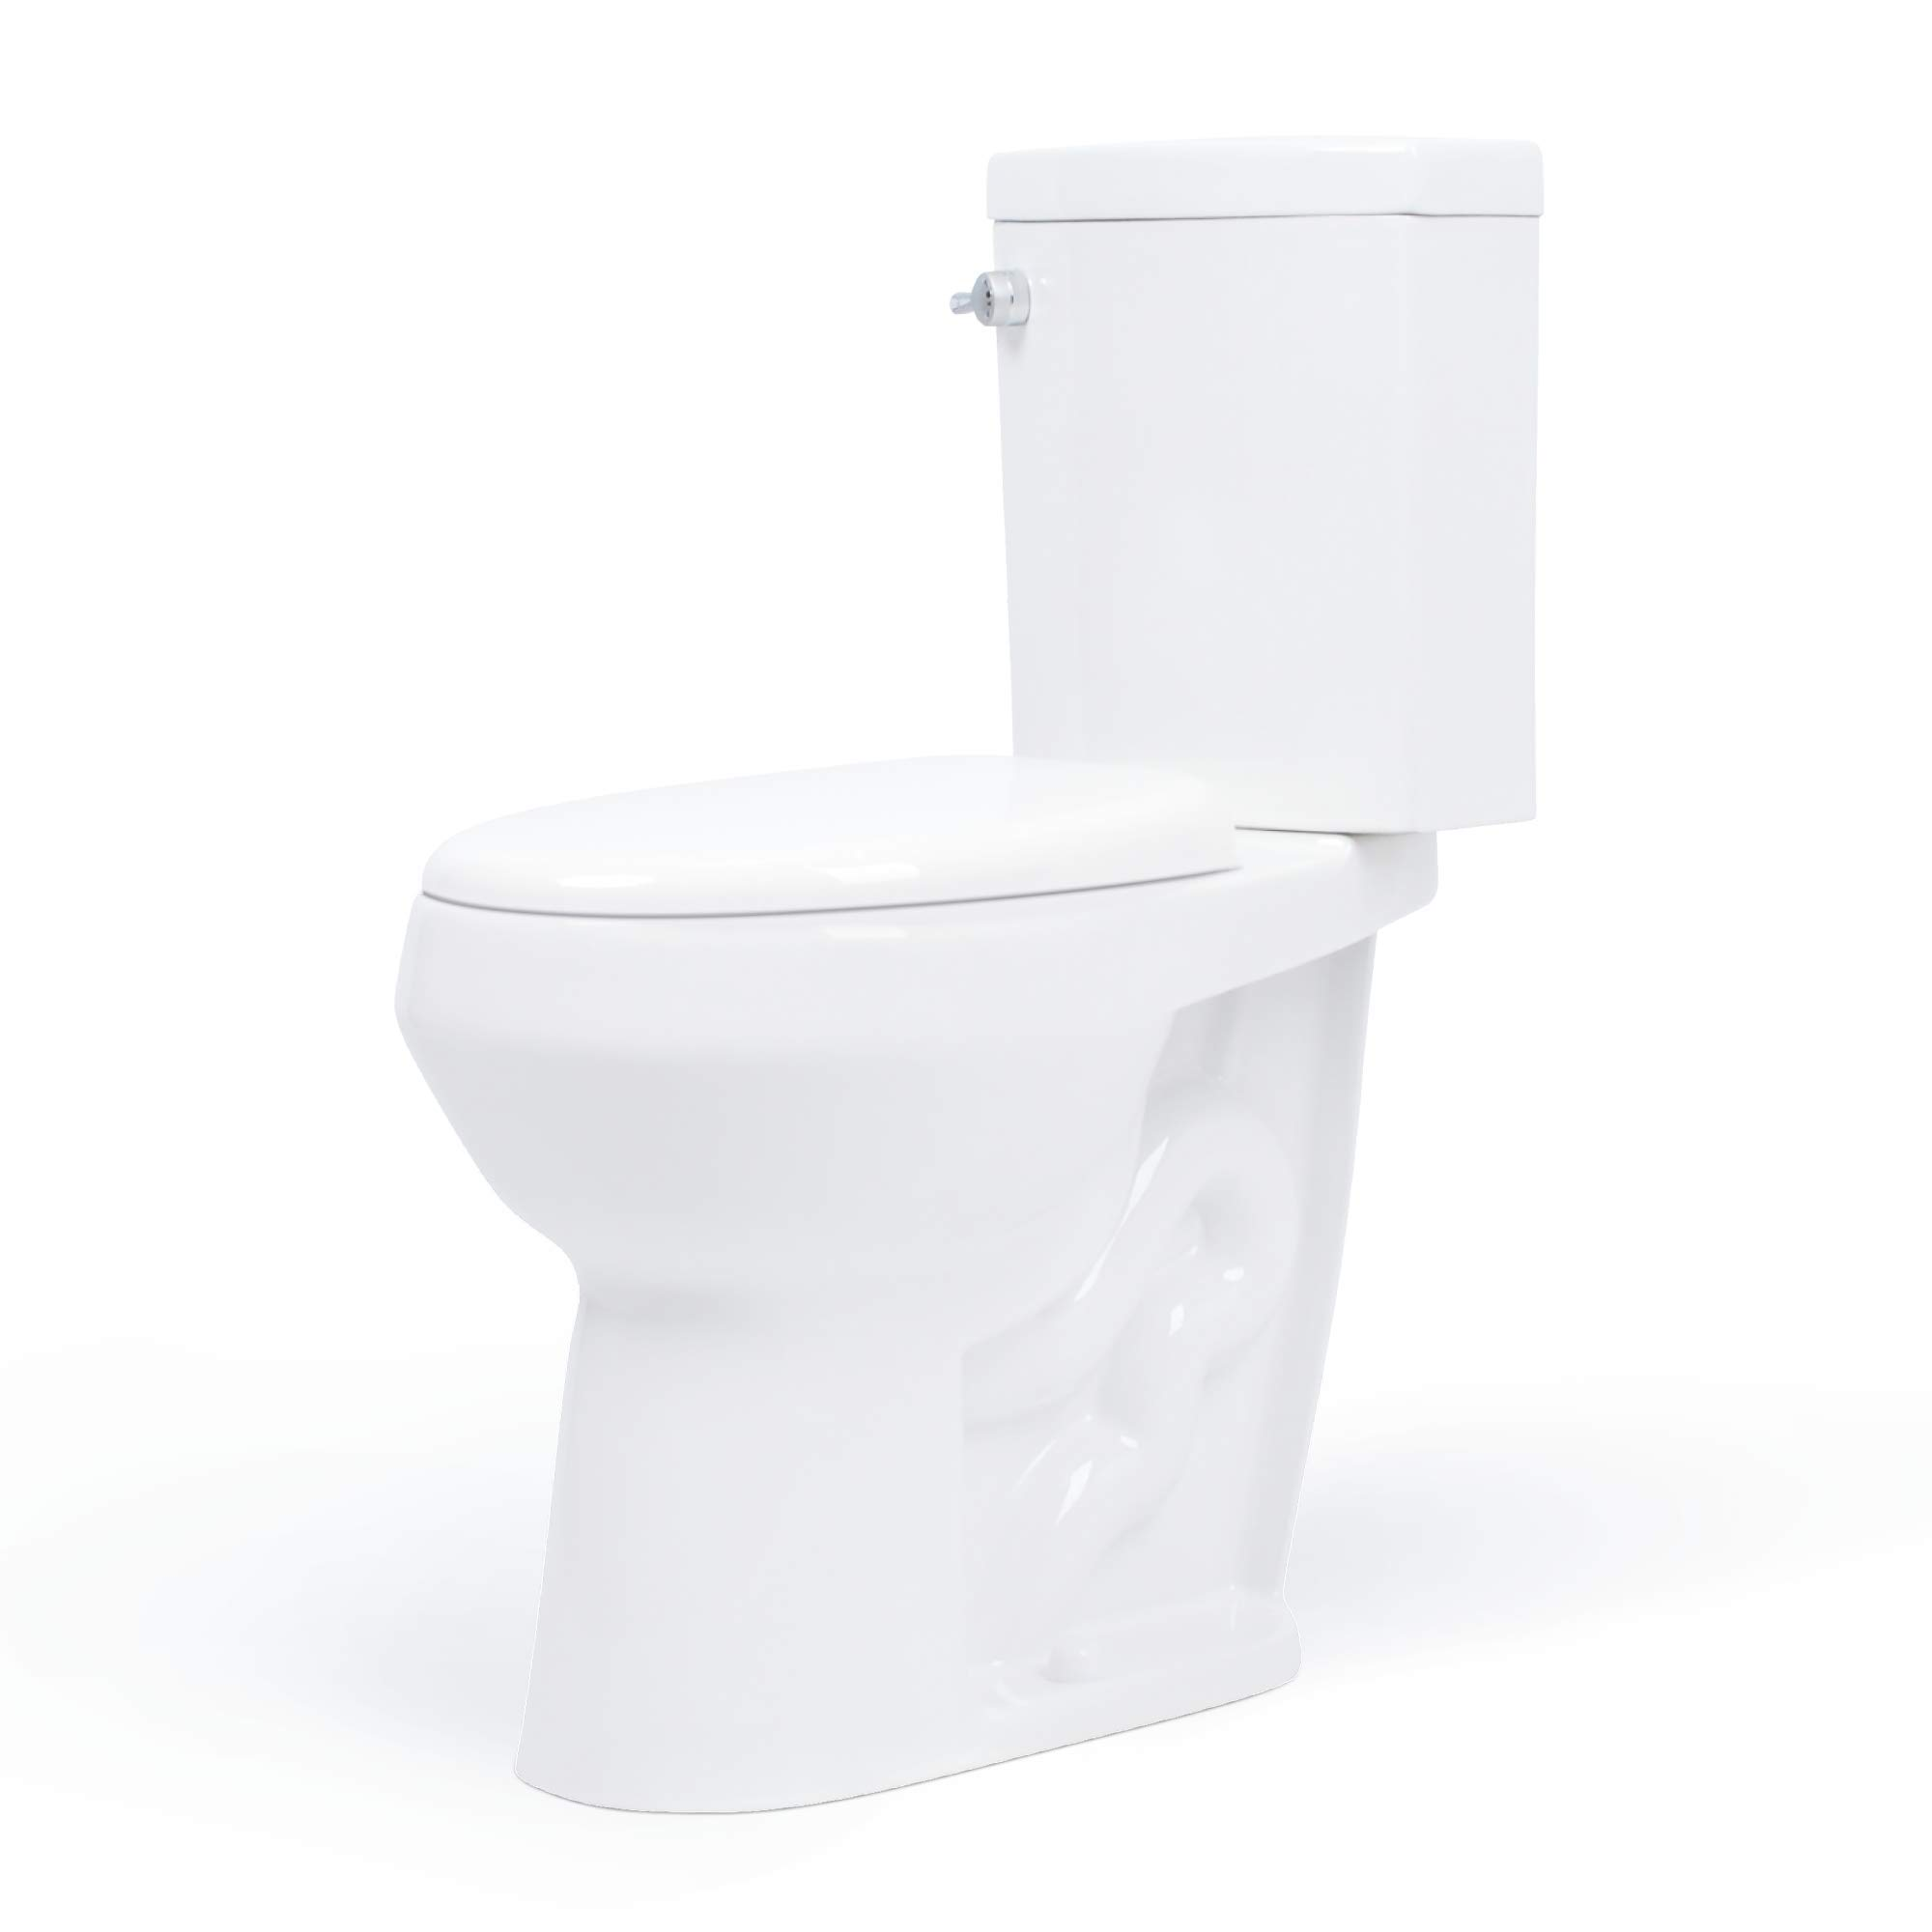 20 inch Extra Tall Toilet. Convenient Height bowl taller than ADA Comfort Height. Dual flush, Slow-close seat, New handle by Convenient Height